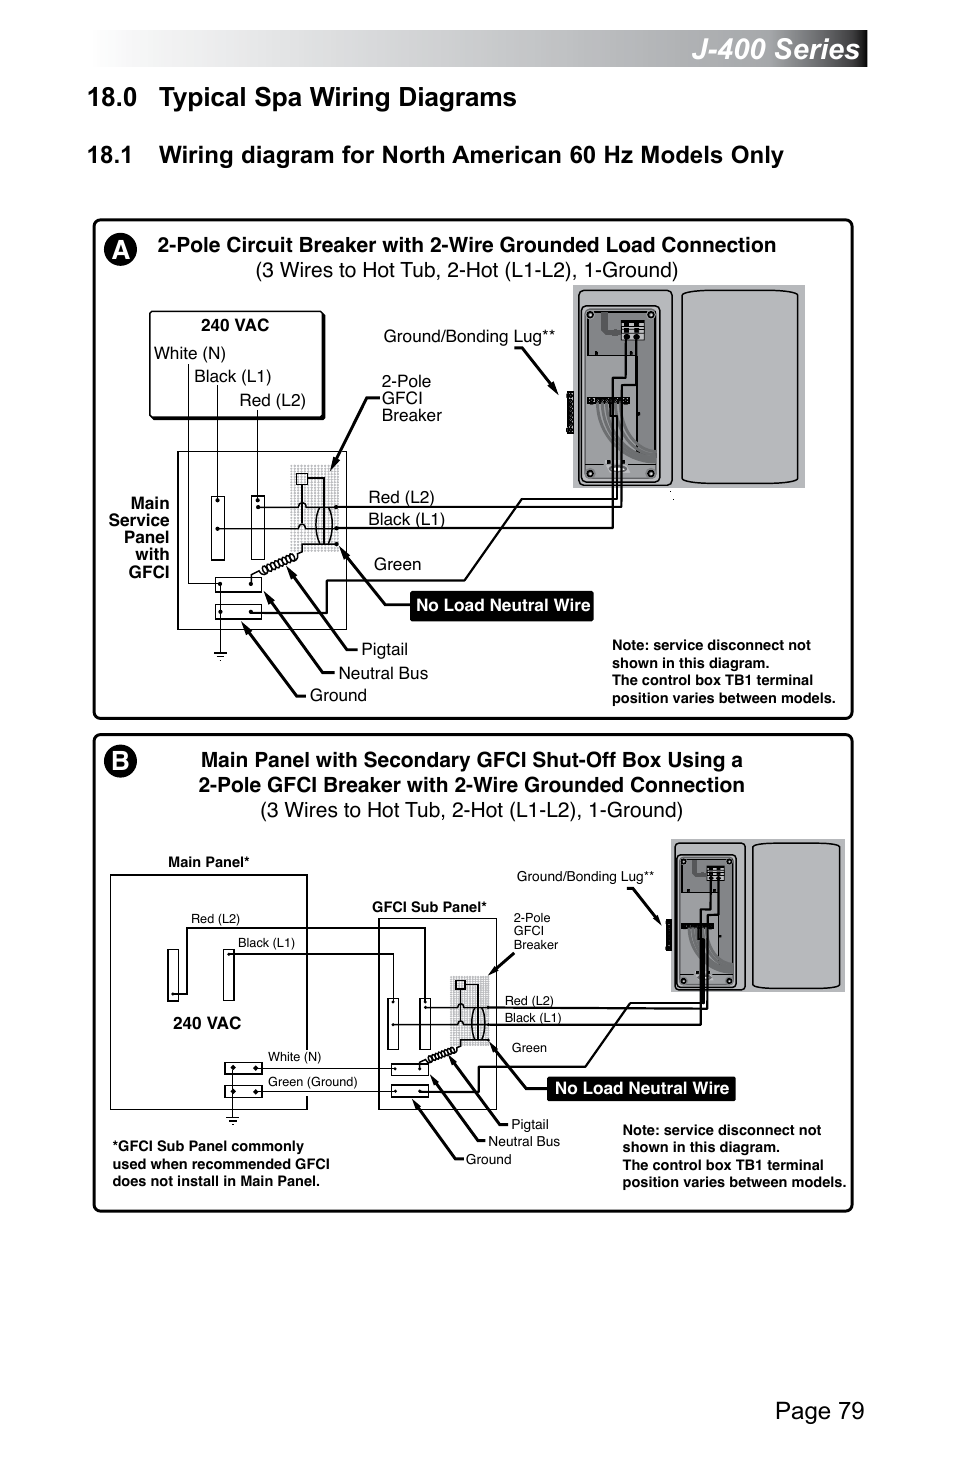 jacuzzi j 470 page85 0 typical spa wiring diagrams, j 400 series, page 79 jacuzzi j jacuzzi wiring diagram at panicattacktreatment.co